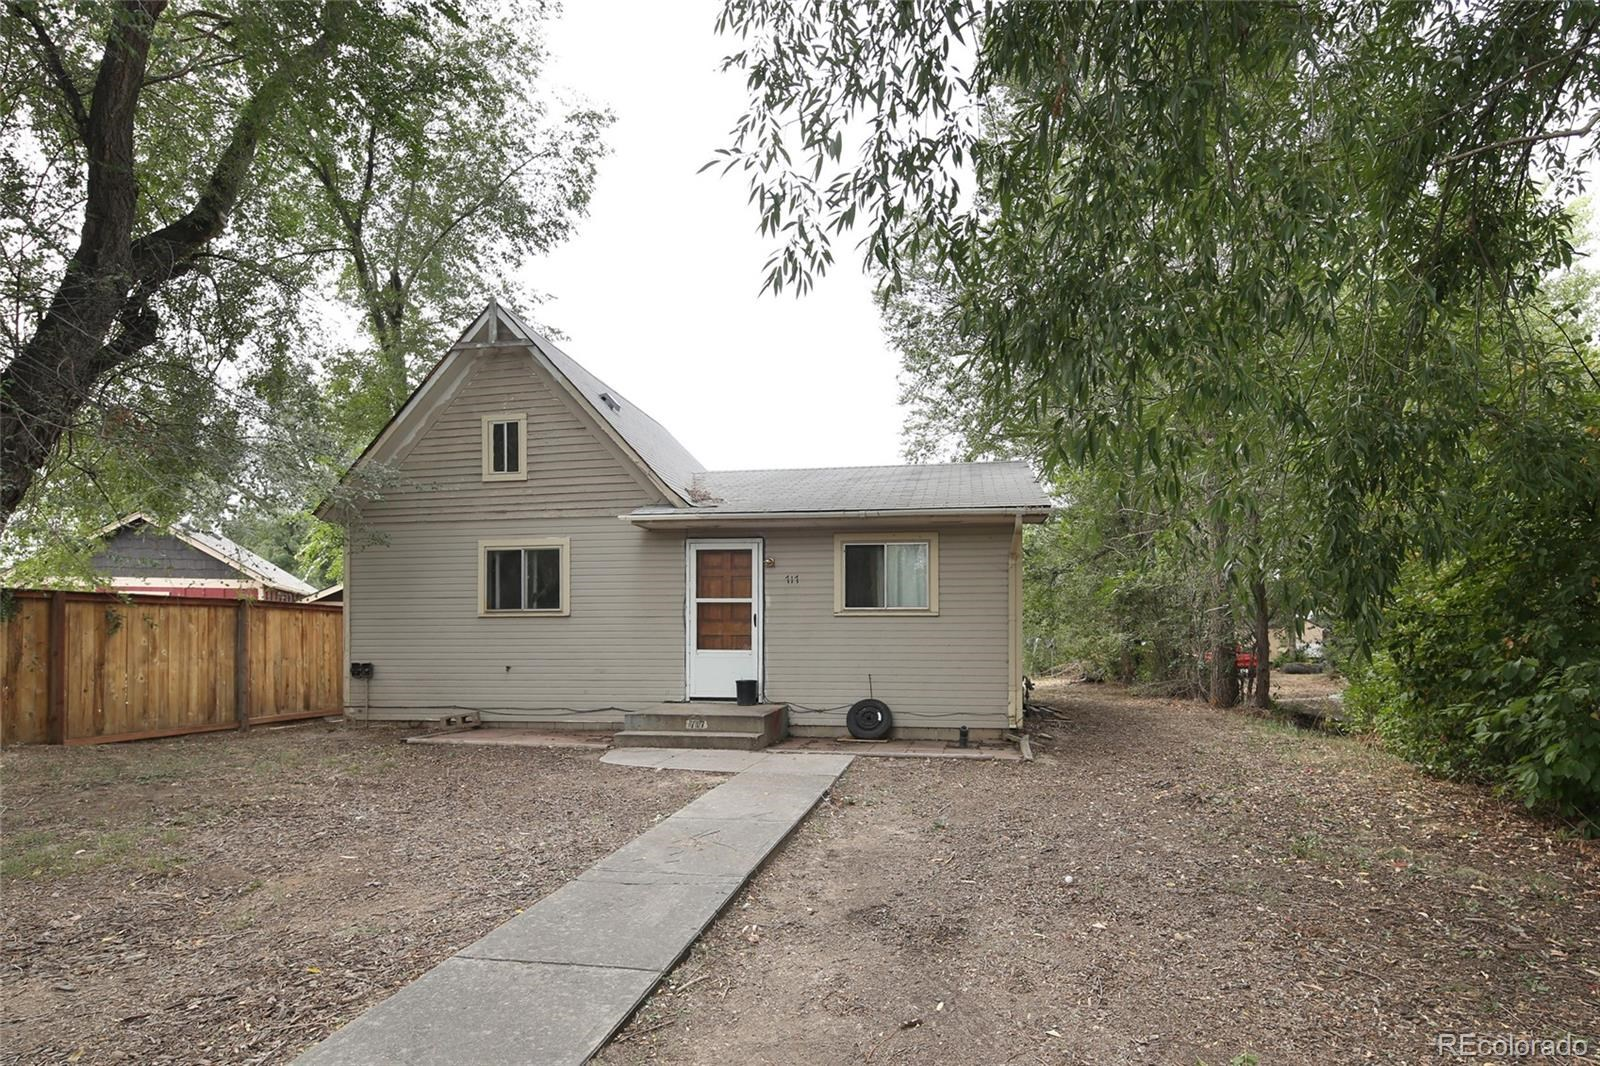 MLS# 6260735 - 3 - 717 Lindenmeier Road, Fort Collins, CO 80524